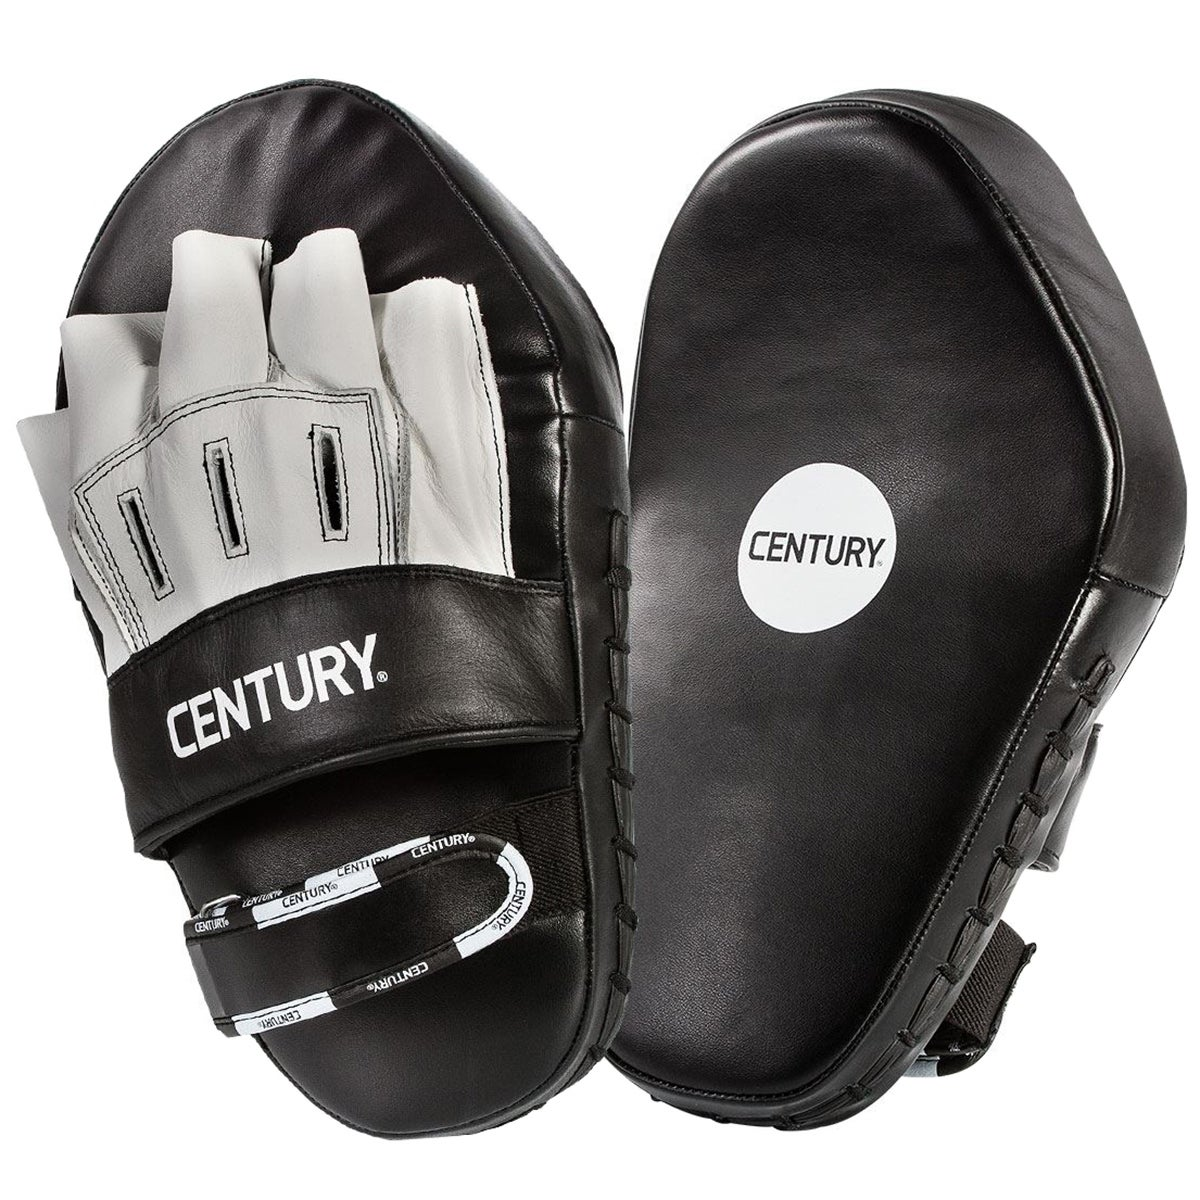 Acc Pair Of Sanabul Essential Curved Boxing Mma Punching Mitts Boxing Training Punch Gloves